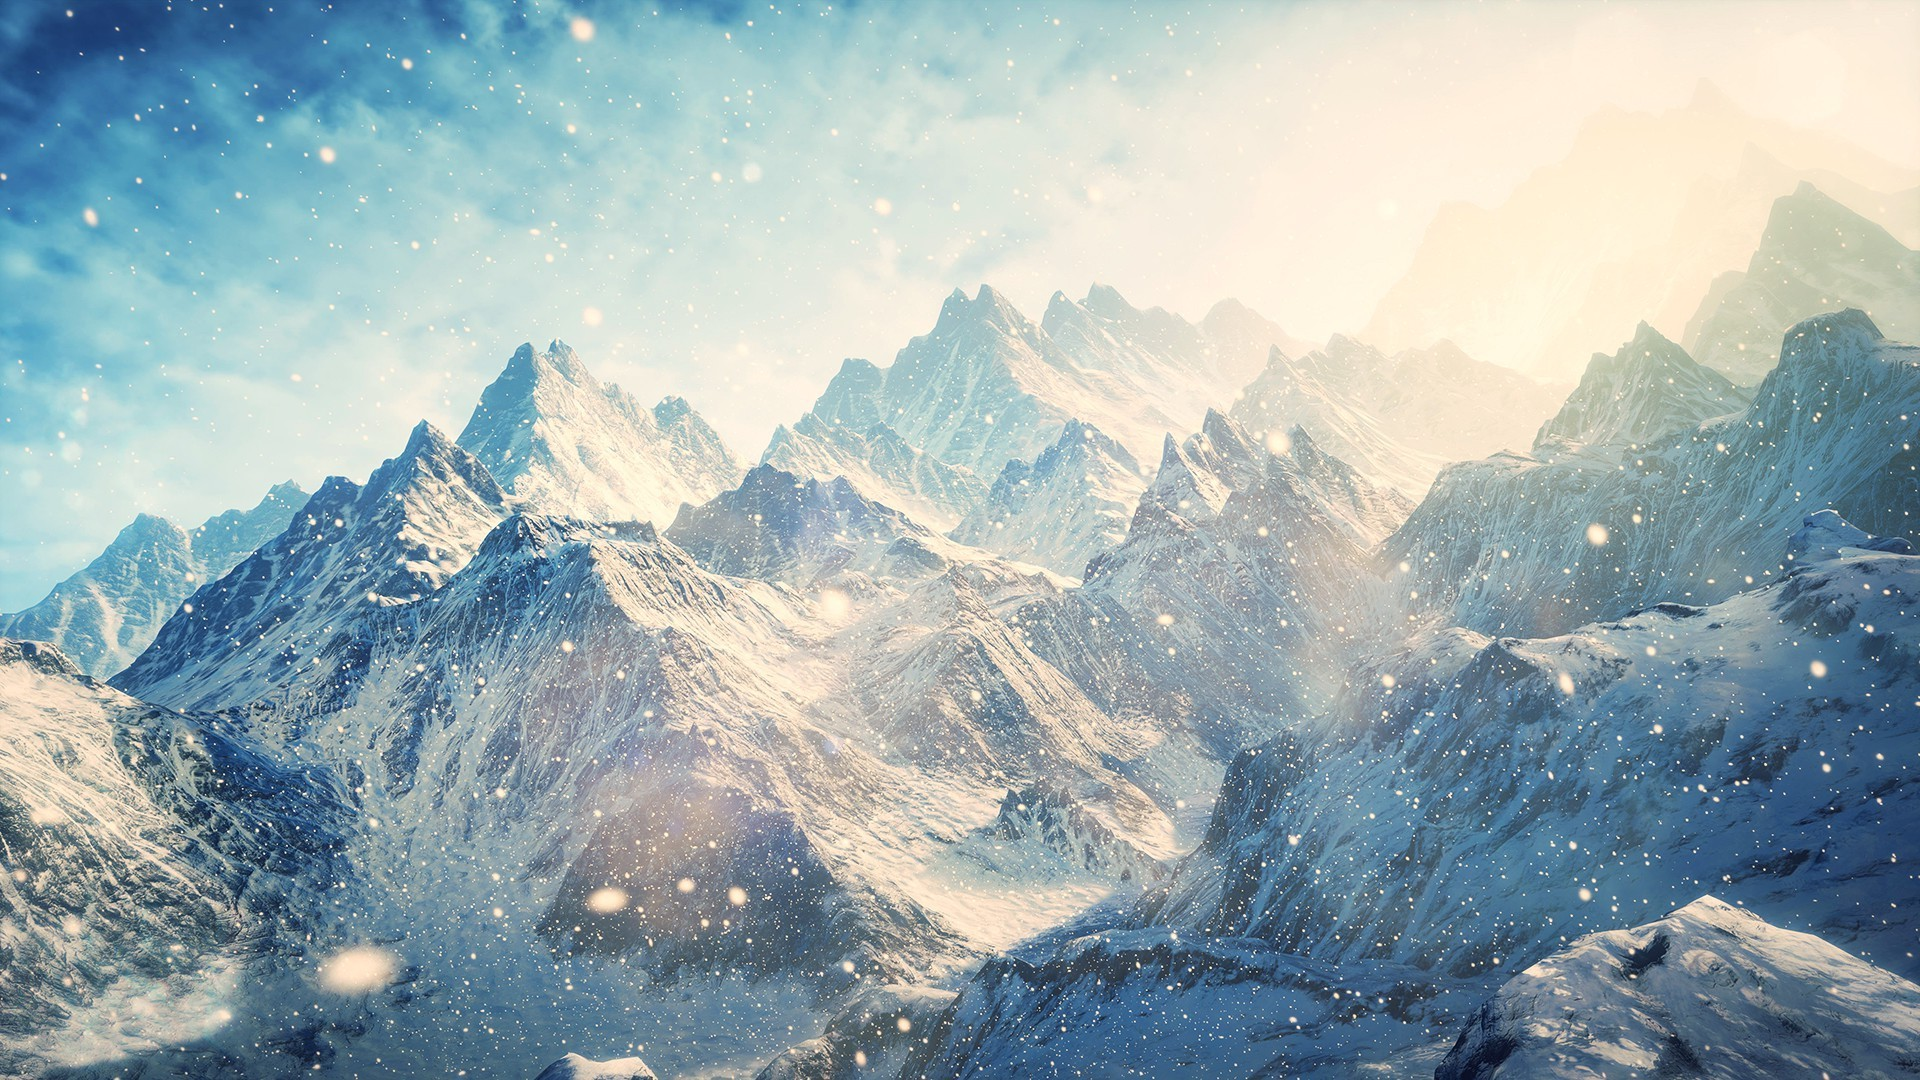 An awesome wallpaper of winter A landscape wallpaper for your desktop 1920x1080